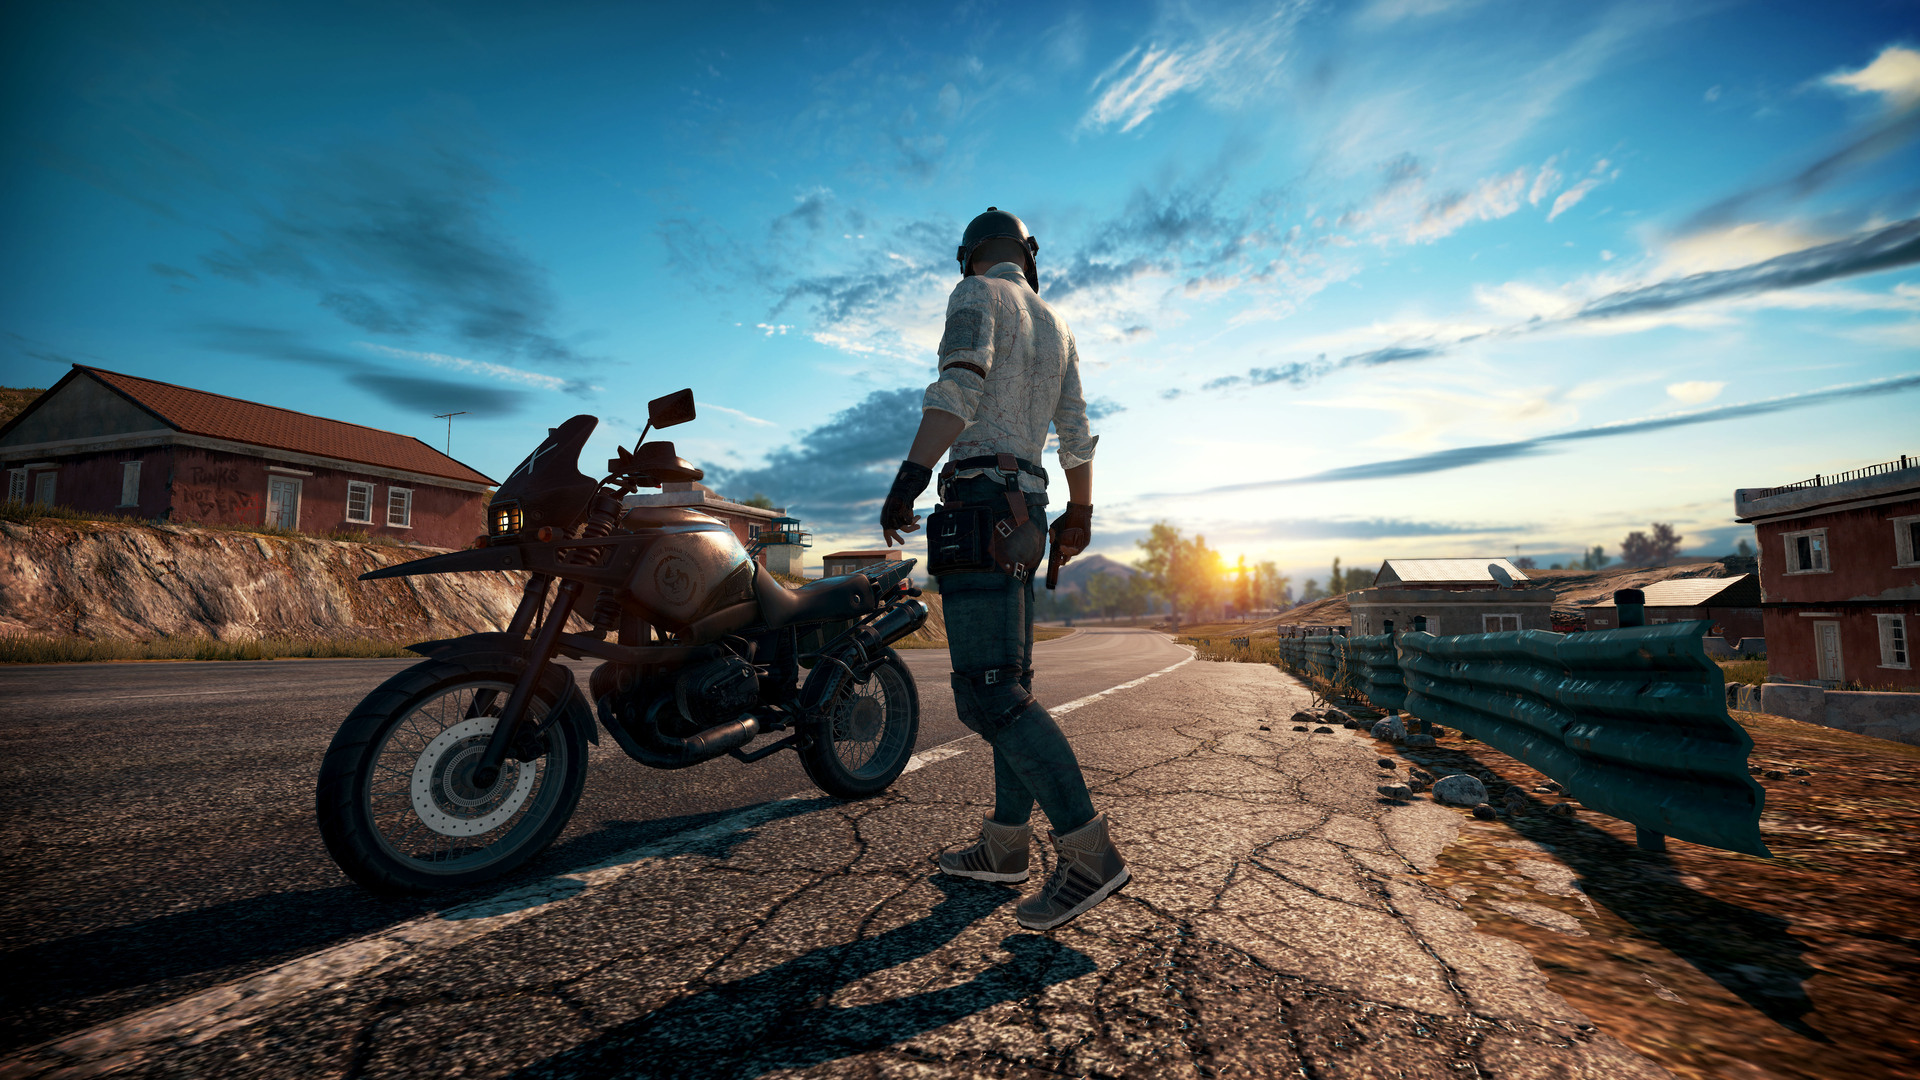 Pubg Wallpapers Hd 1080p: 1920x1080 PlayerUnknowns Battlegrounds 5k Screenshot